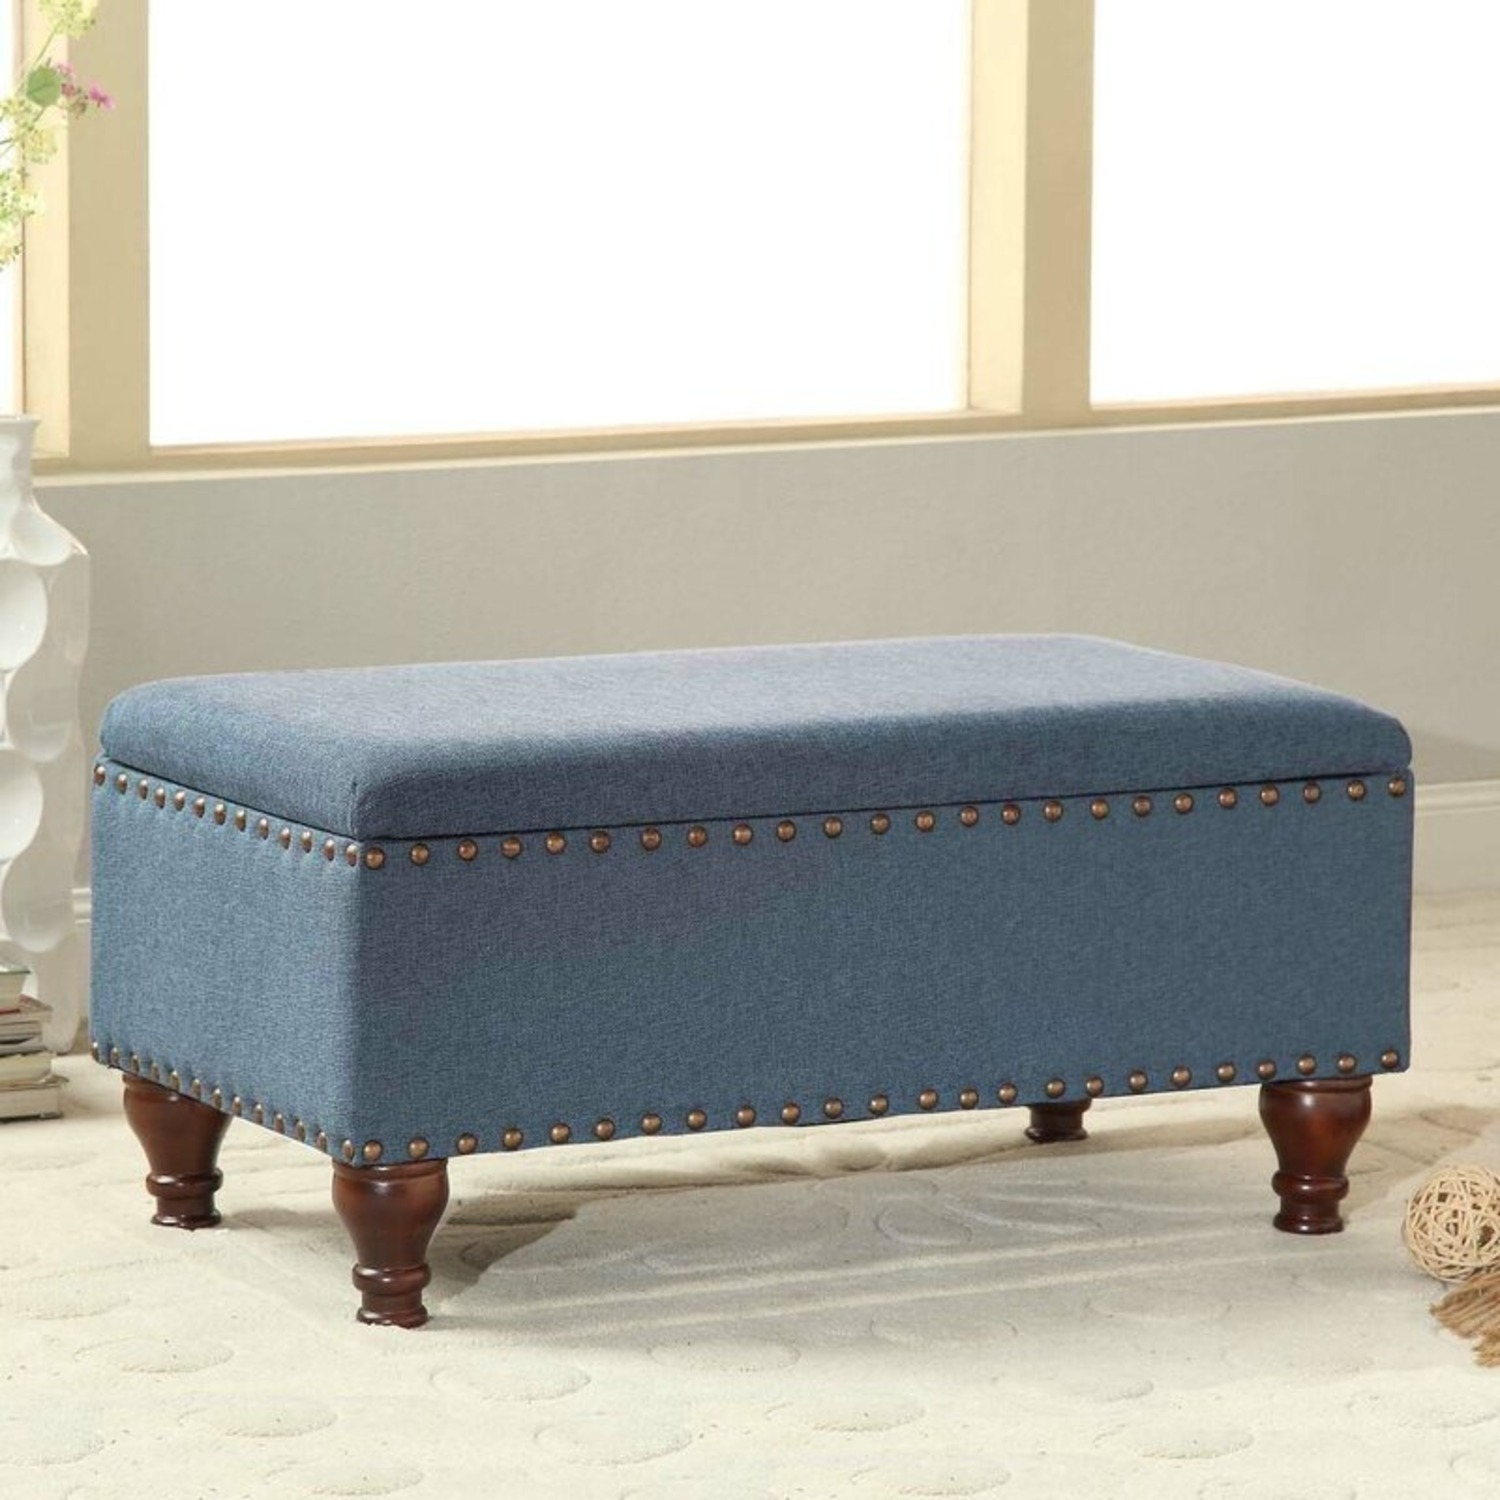 Wayfair Oakford Upholstered Flip Top Storage Bench - image-1